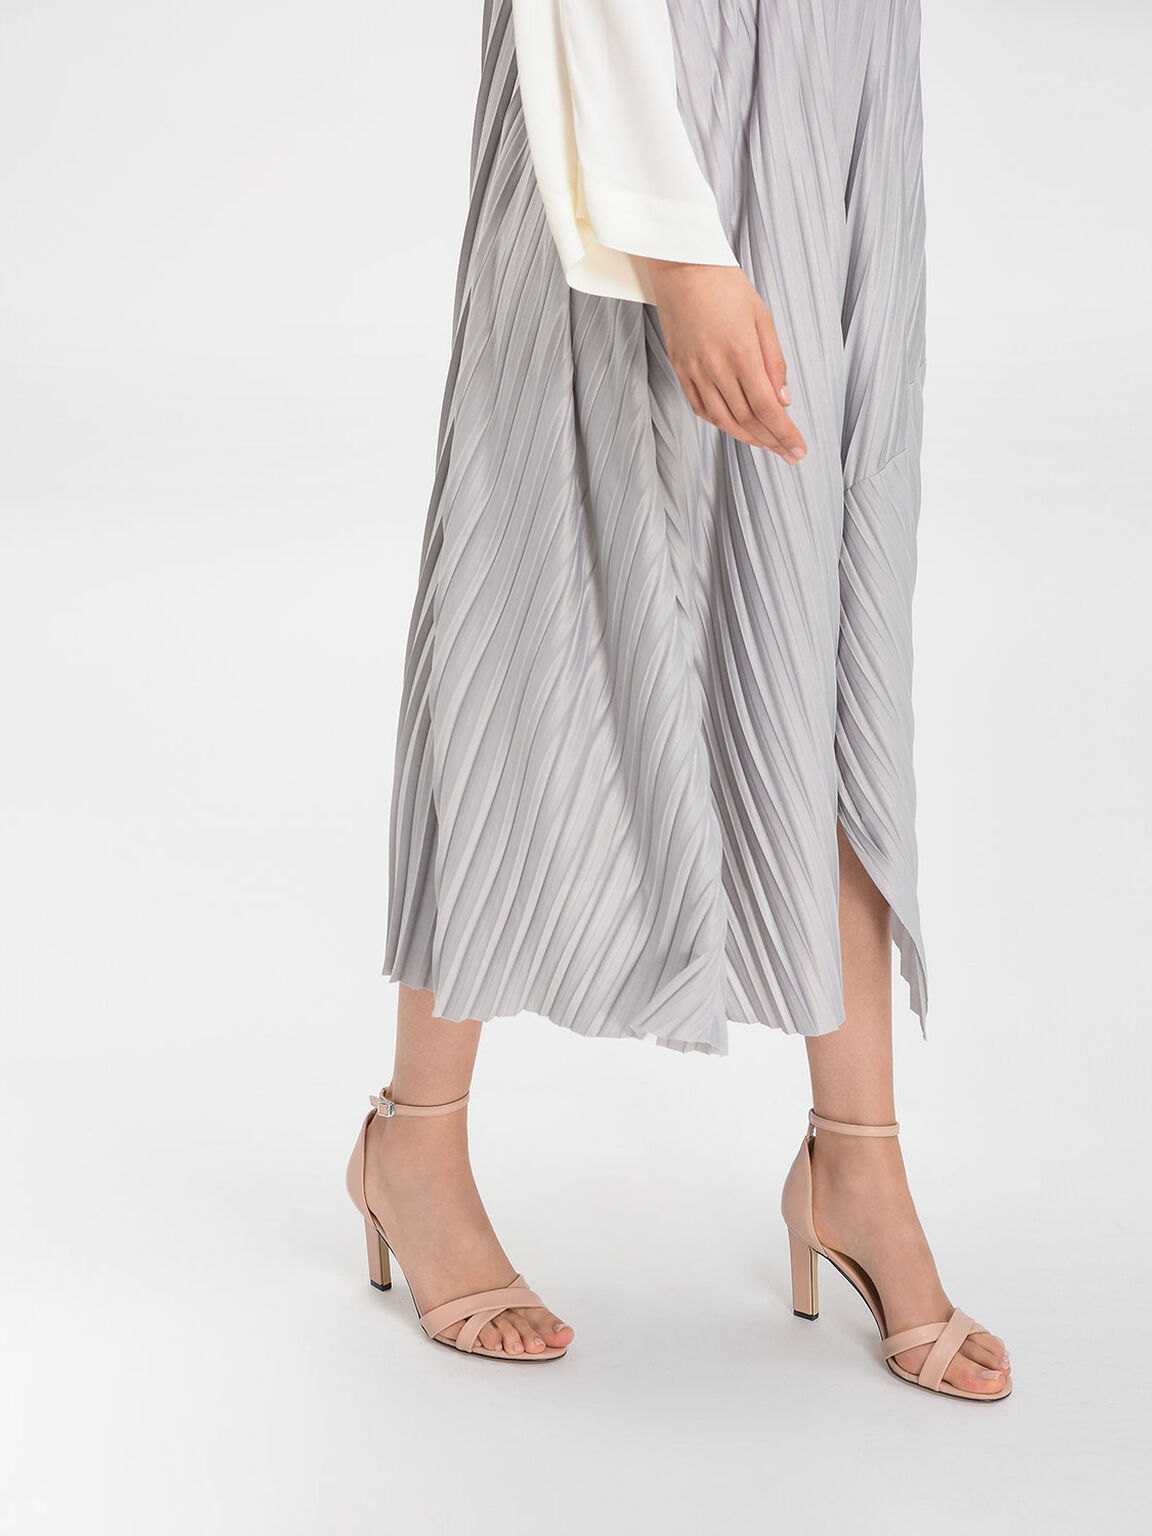 Ankle Strap Criss Cross Heeled Sandals, Nude, hi-res